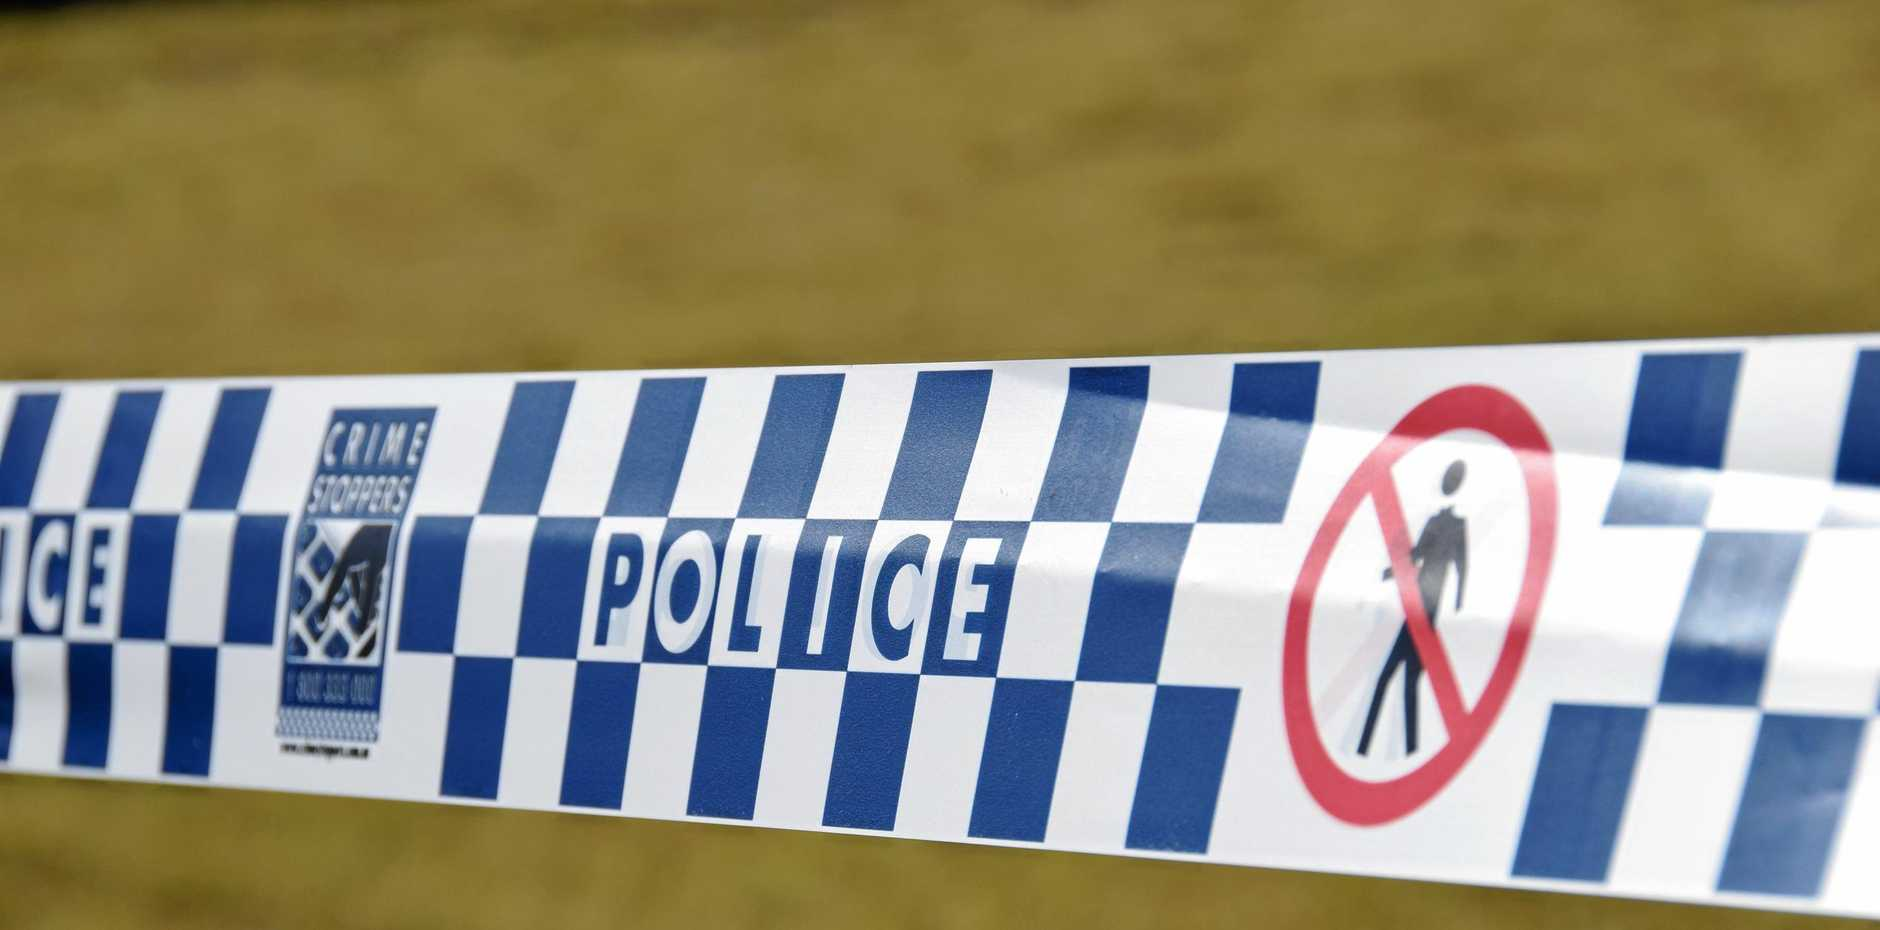 Robert Bruce Smith, 57, was charged with the domestic-violence related murder after the woman's body was found inside a home near Nambucca.